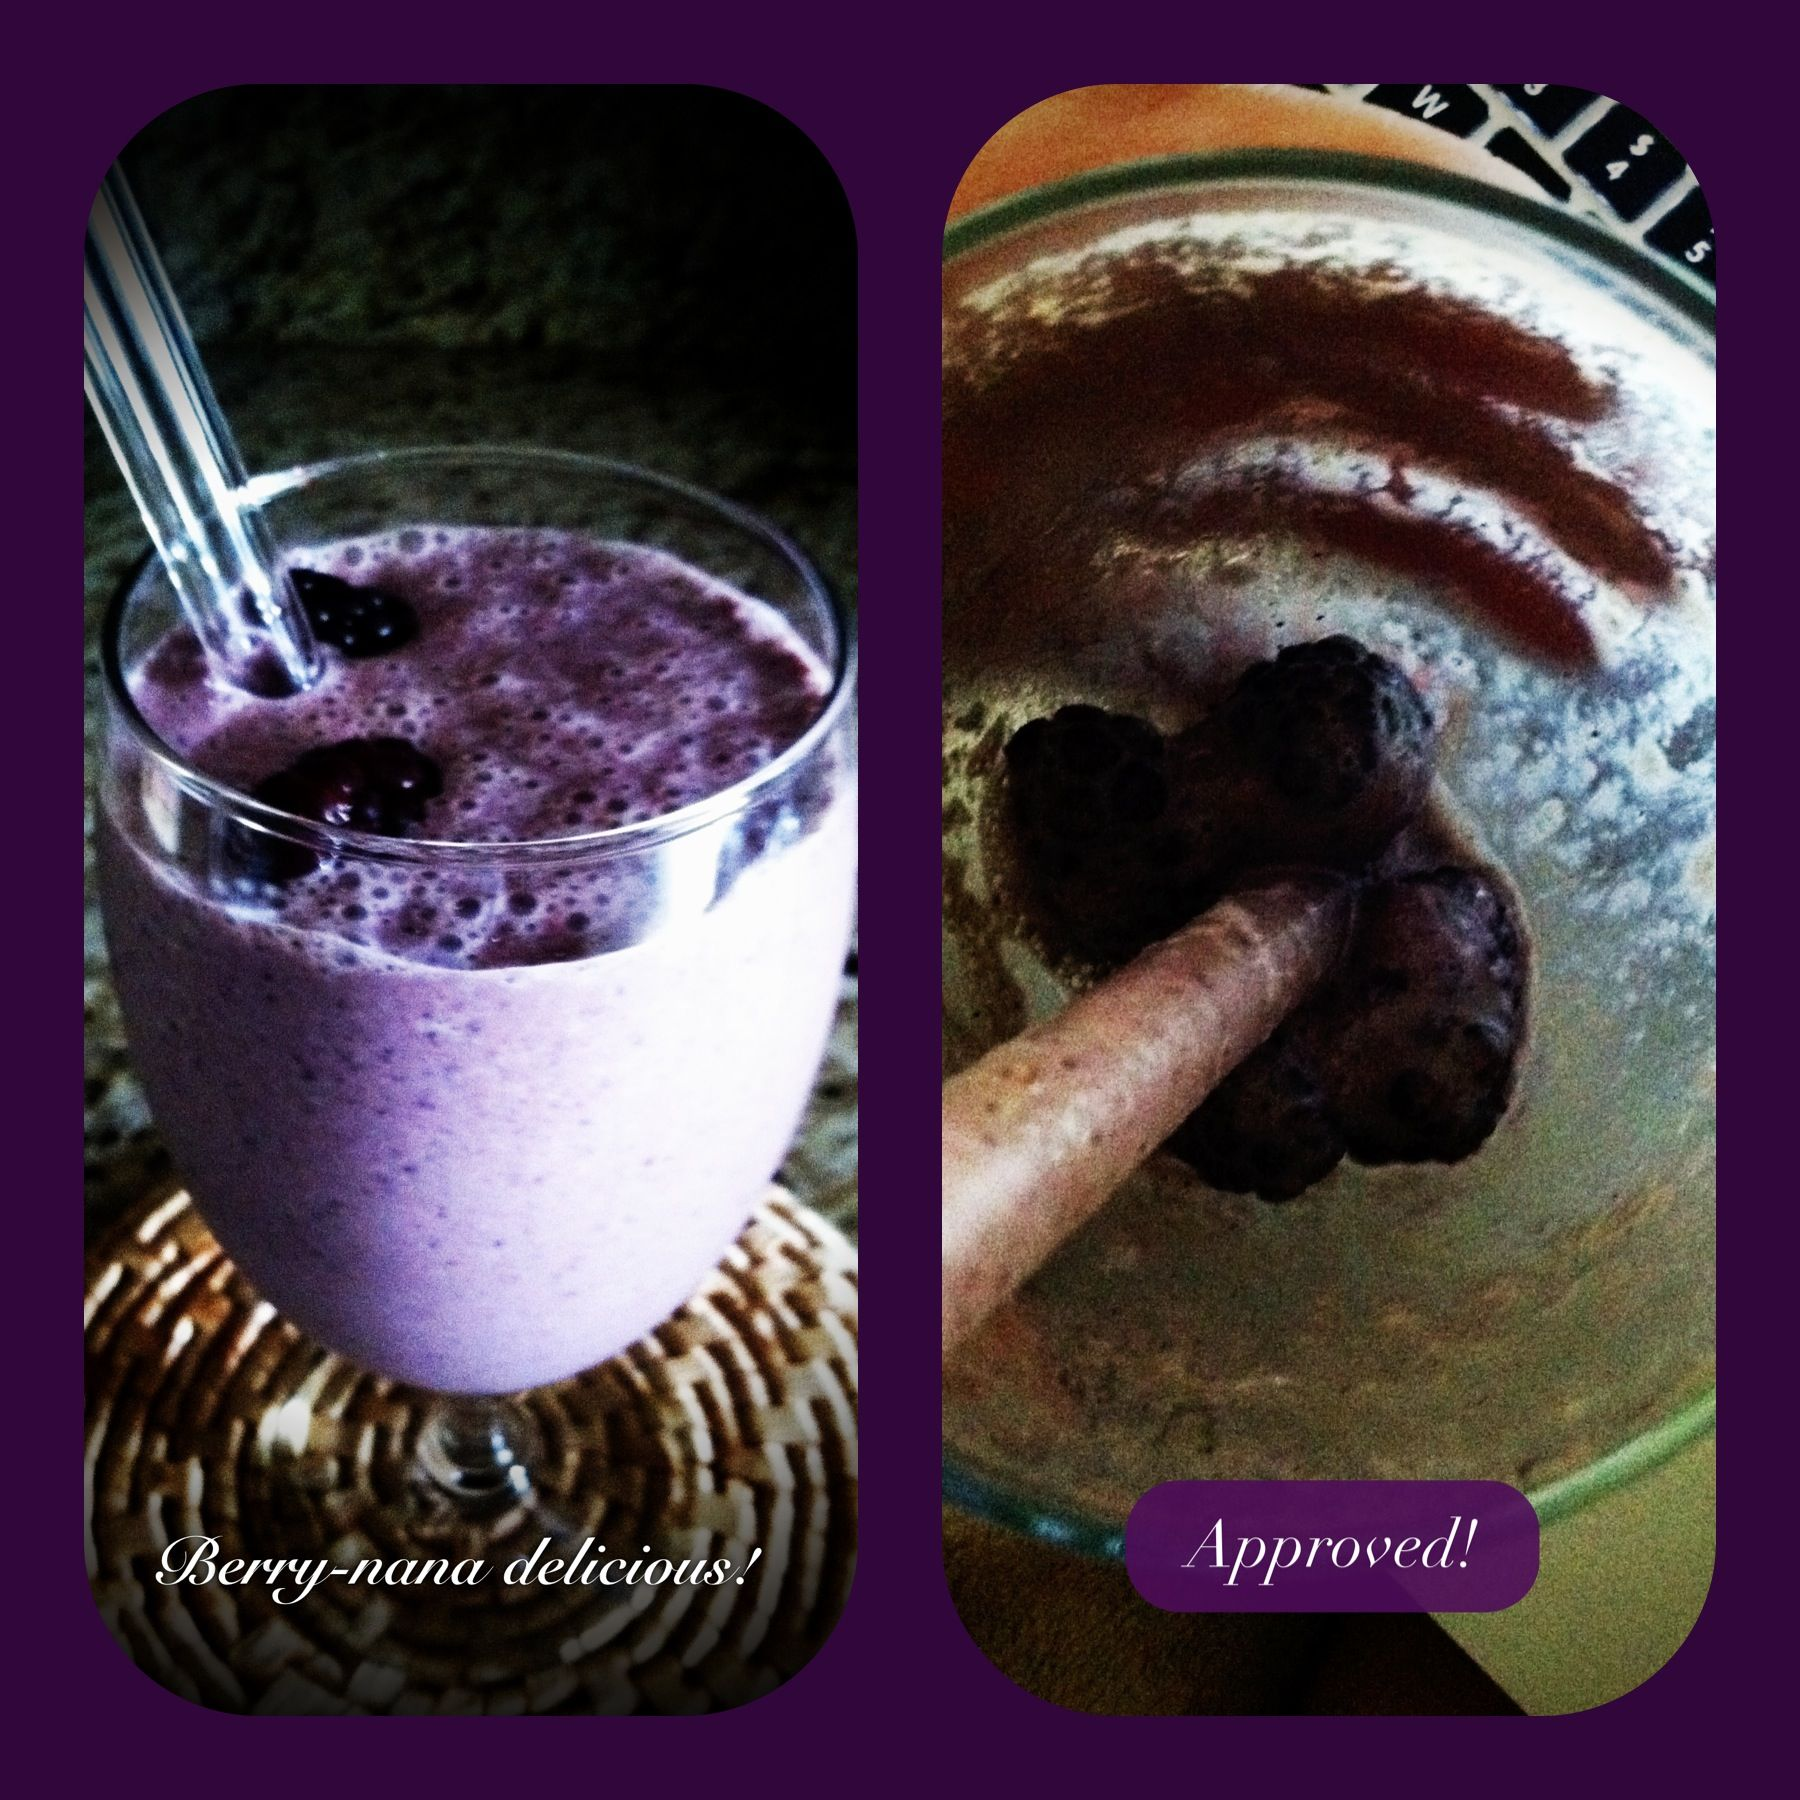 #Smoothie  Banana, blueberry and blackberry smoothie, delightful